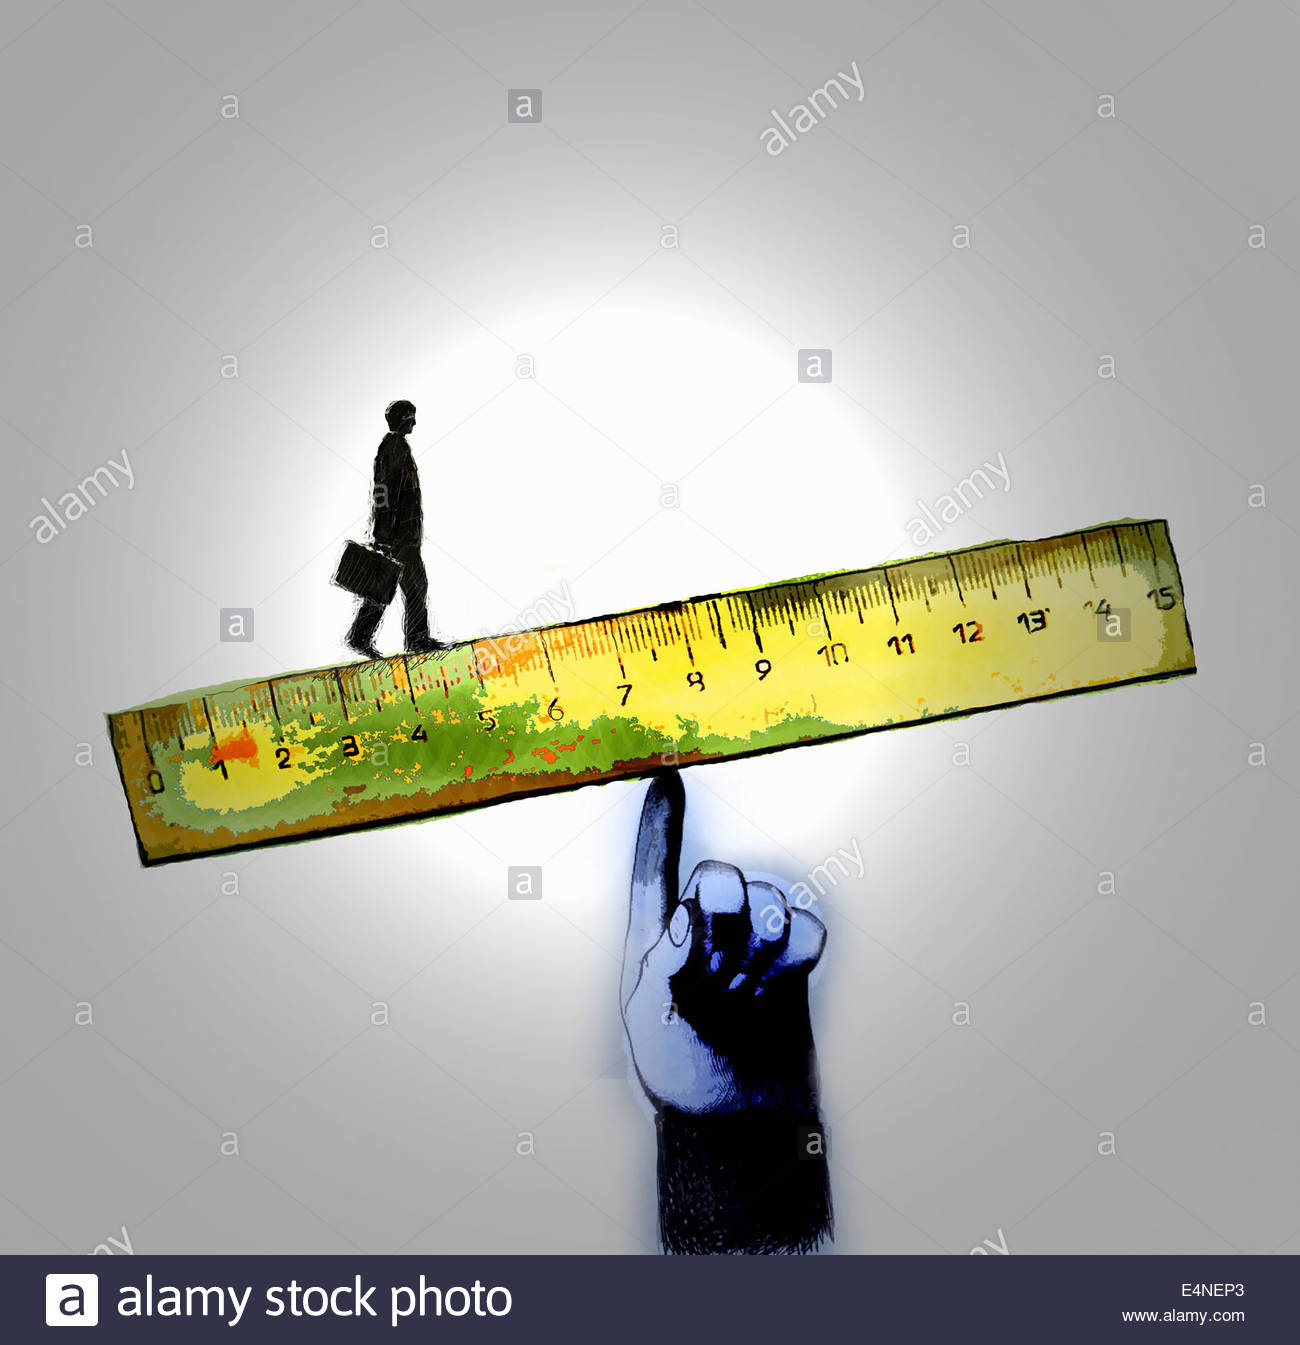 Businessman walking on edge of ruler supported by large finger - Stock Image